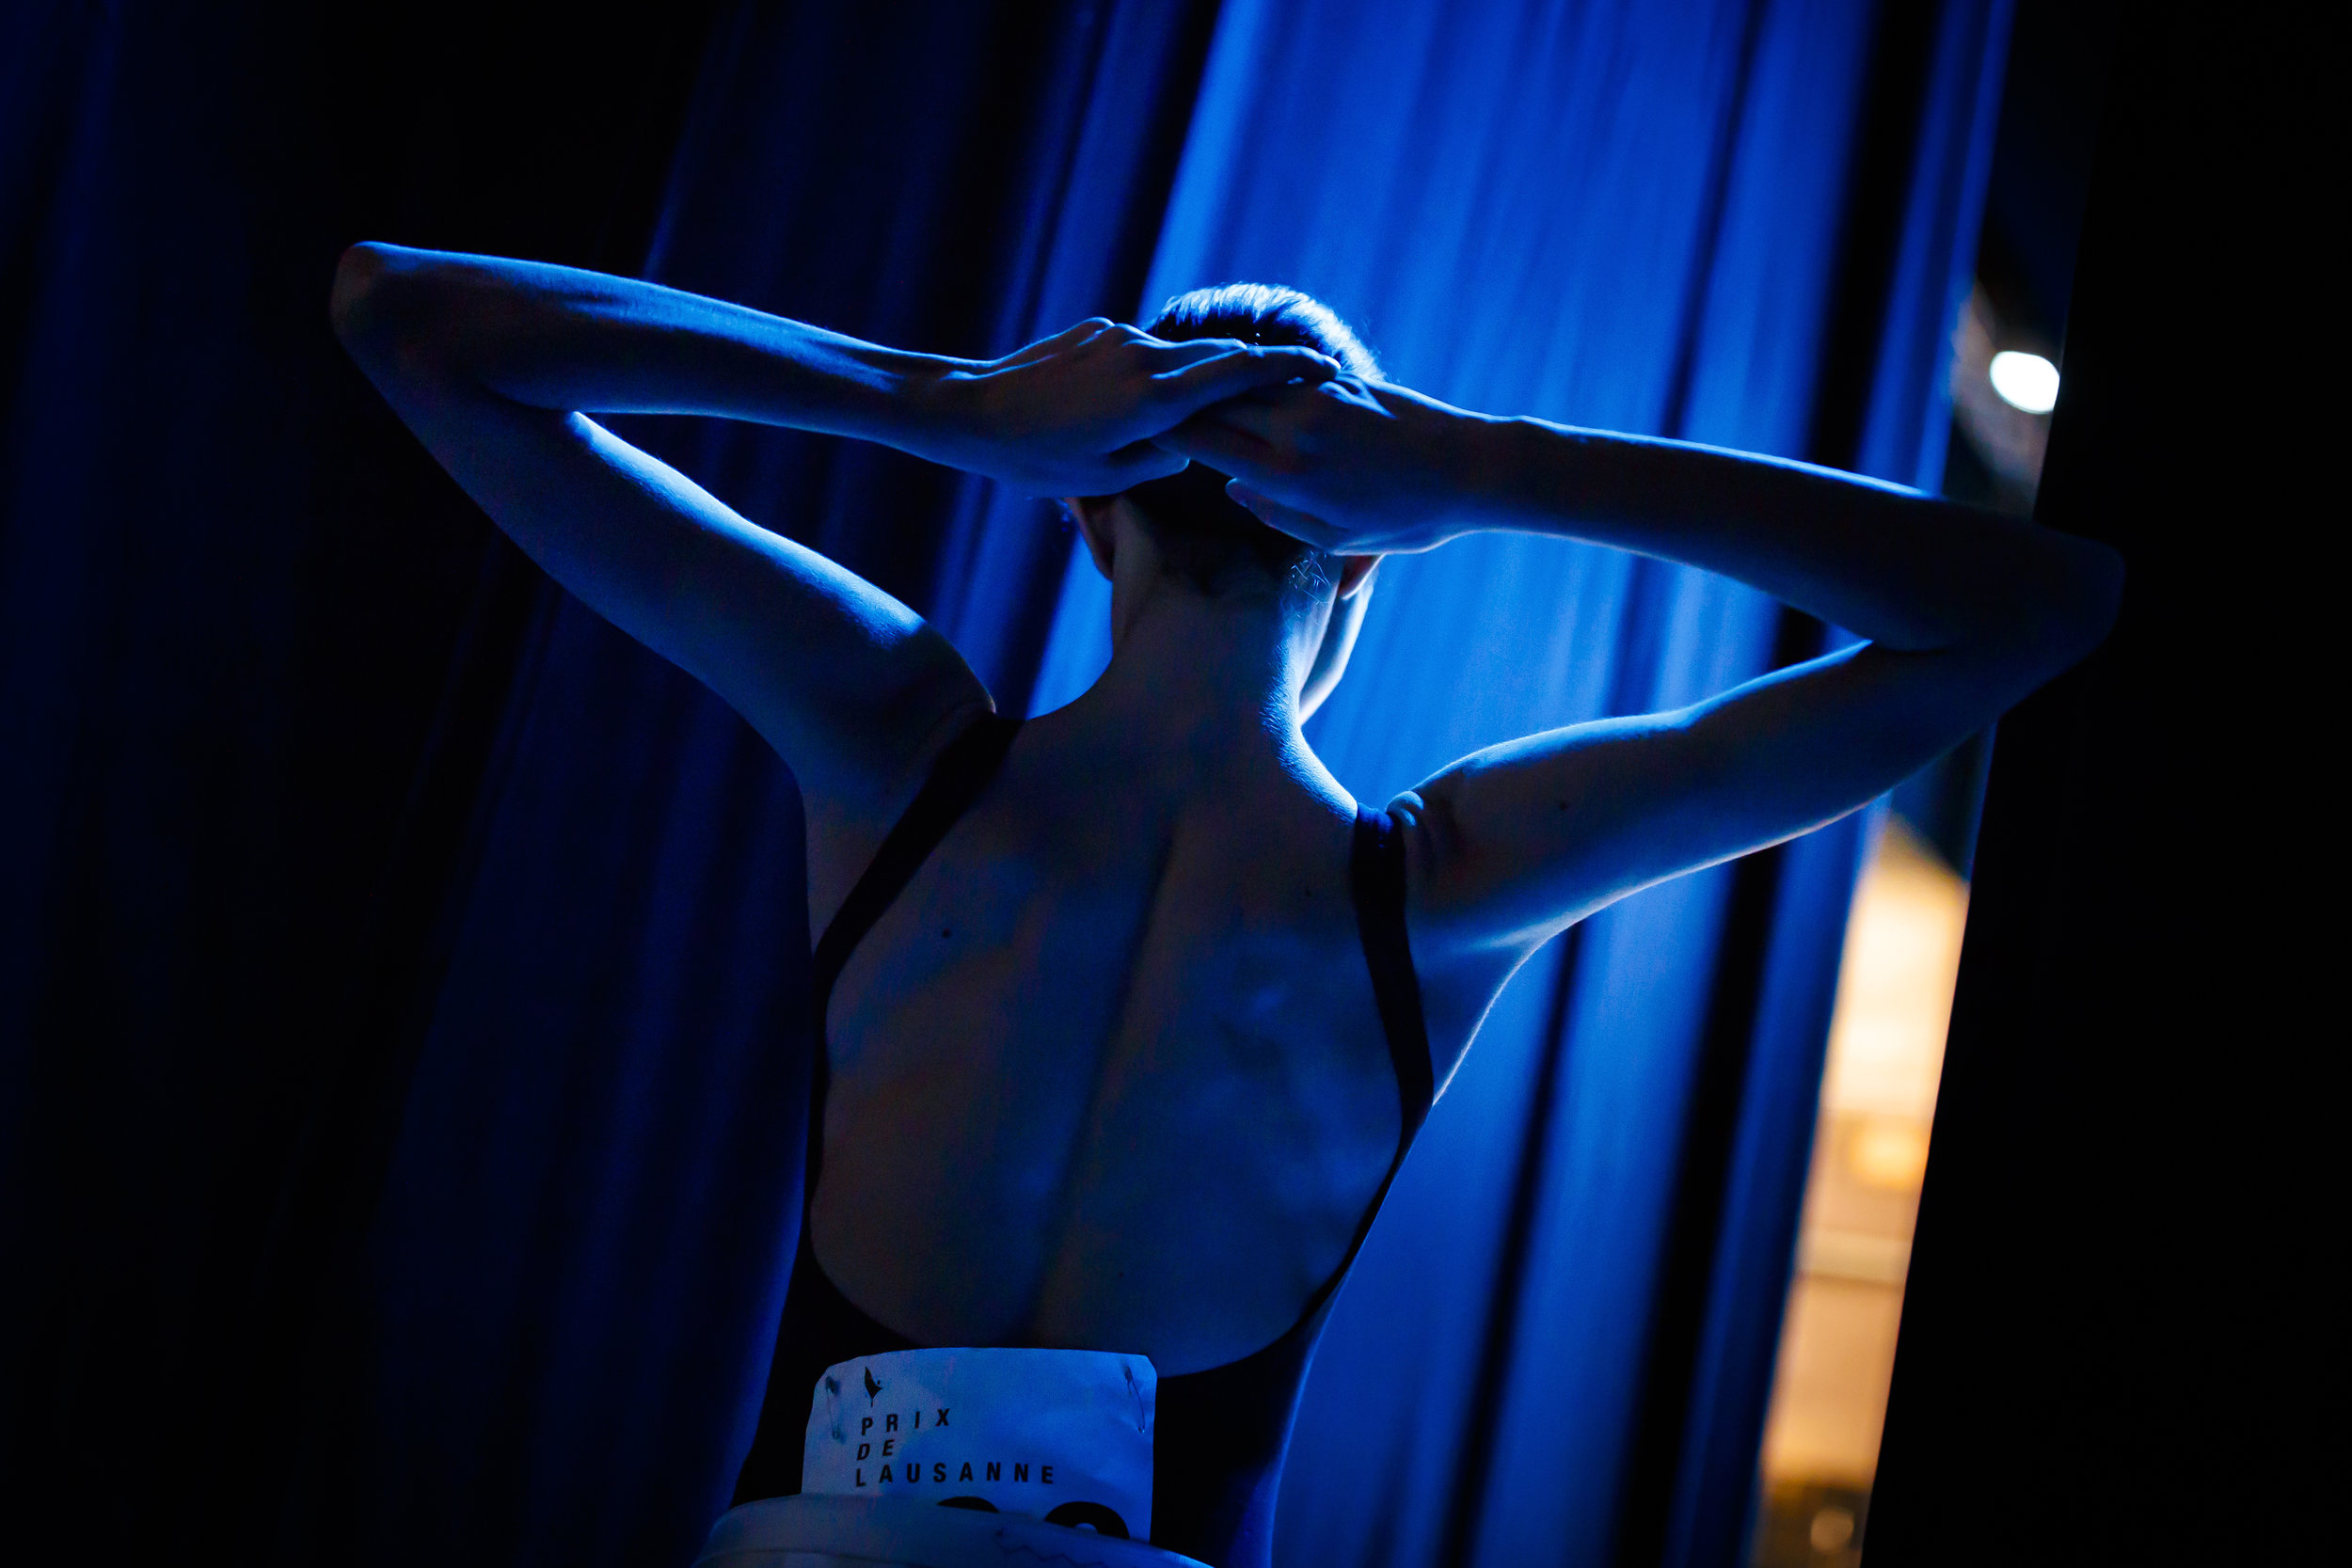 A dancer waits prior to stepping on stage during the first day of the 47th Prix de Lausanne in Lausanne, Switzerland, Monday, February 4, 2019. Launched in 1973, the Prix de Lausanne is an international dance competition for young dancers aged 15 to 18. Closing the six-day event, scholarships granting free tuition in a world-renowned dance school or dance company will be award to the best dancers out of 74 participants this year. (KEYSTONE/Valentin Flauraud)